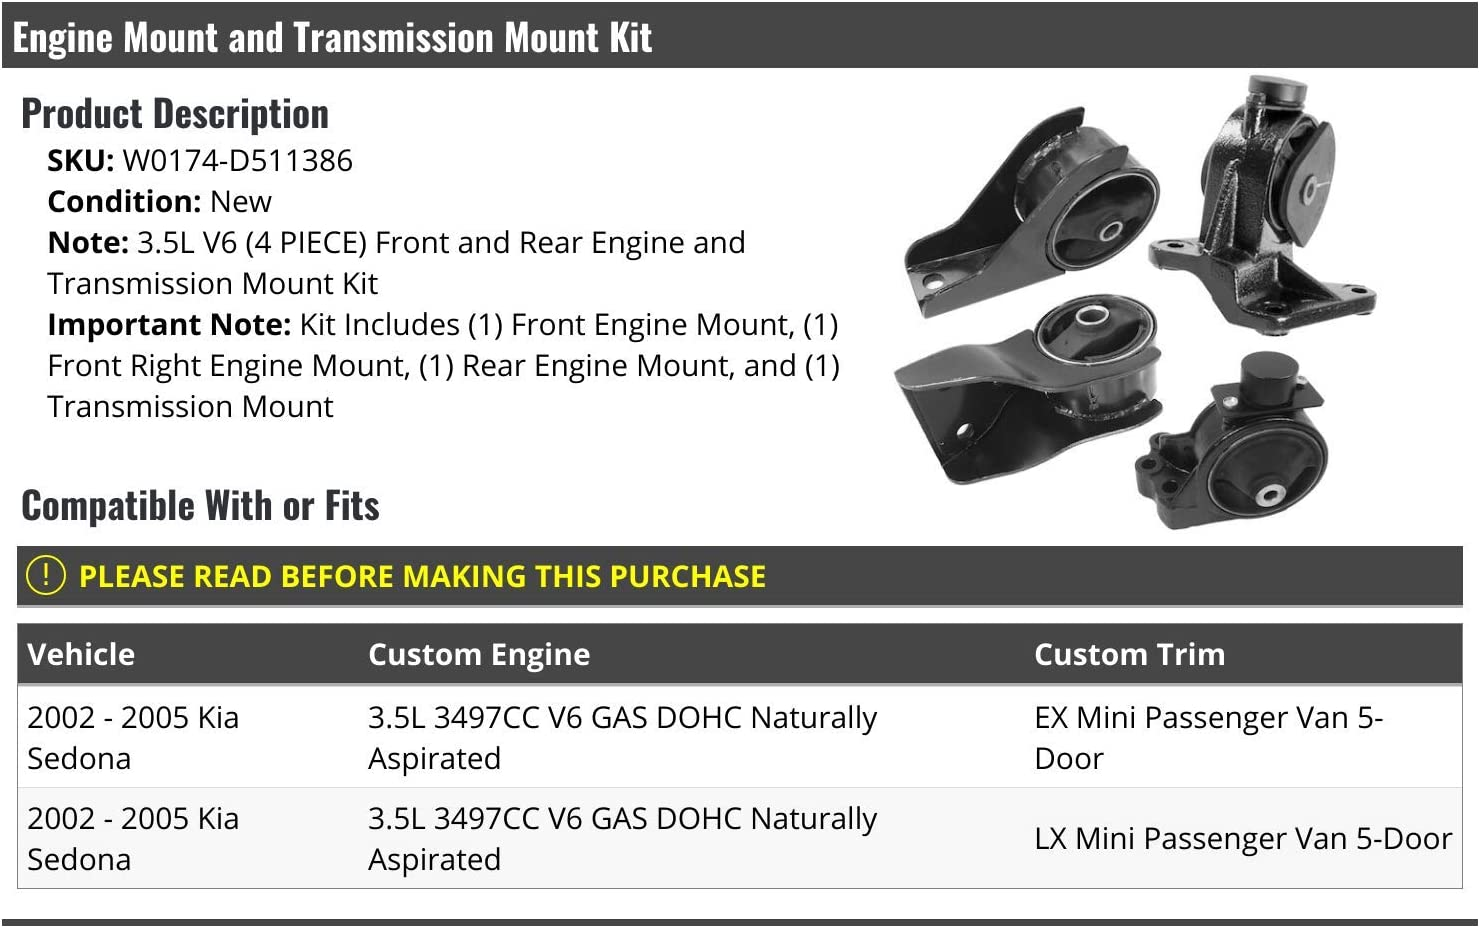 4 Piece Engine Mount and Transmission Mount Kit Compatible with 2002-2005 Kia Sedona 3.5L V6